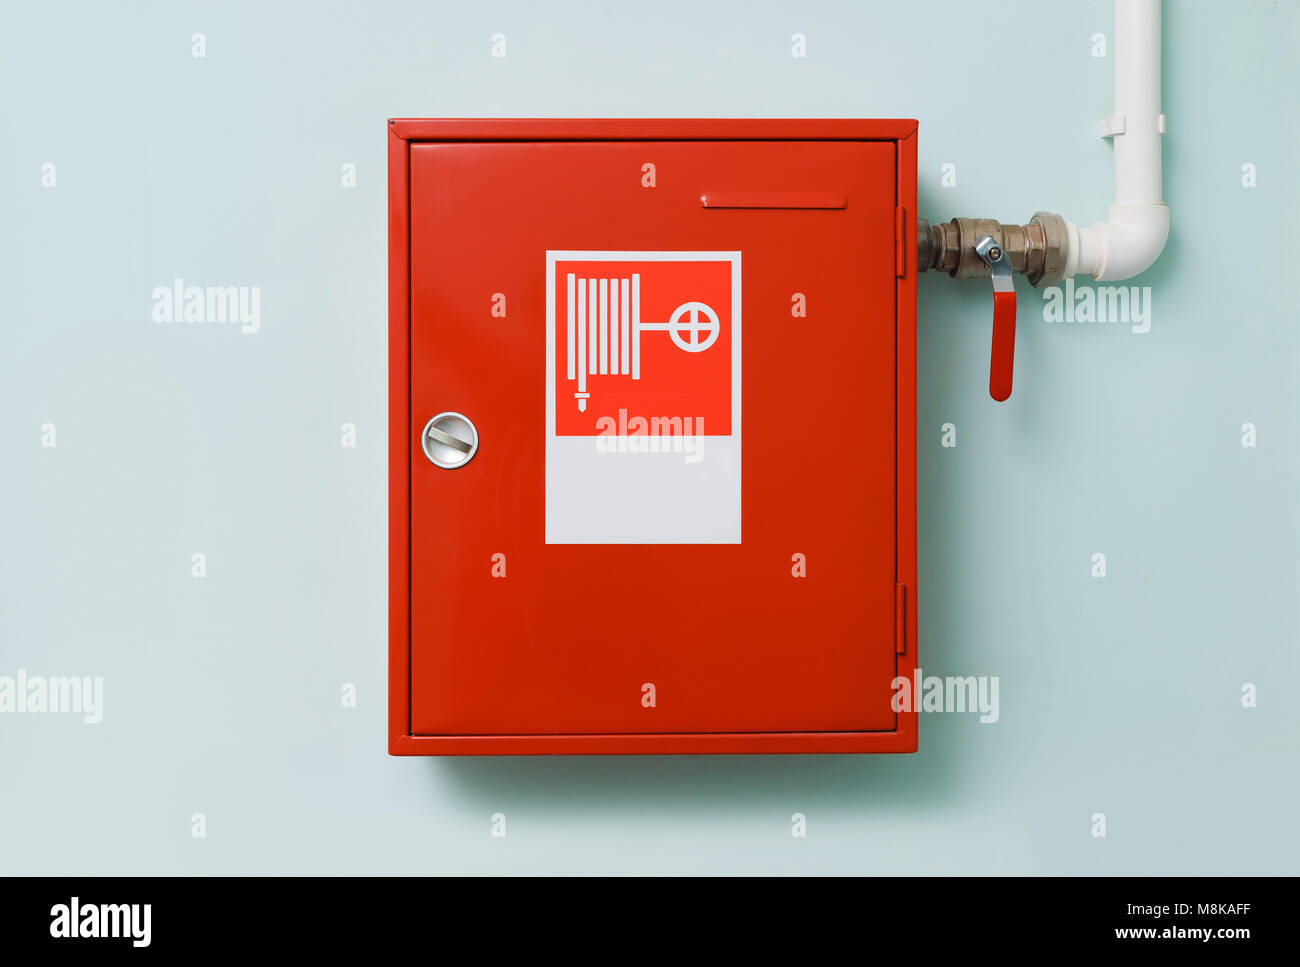 Fire Hose Reel Stock Photos Amp Fire Hose Reel Stock Images